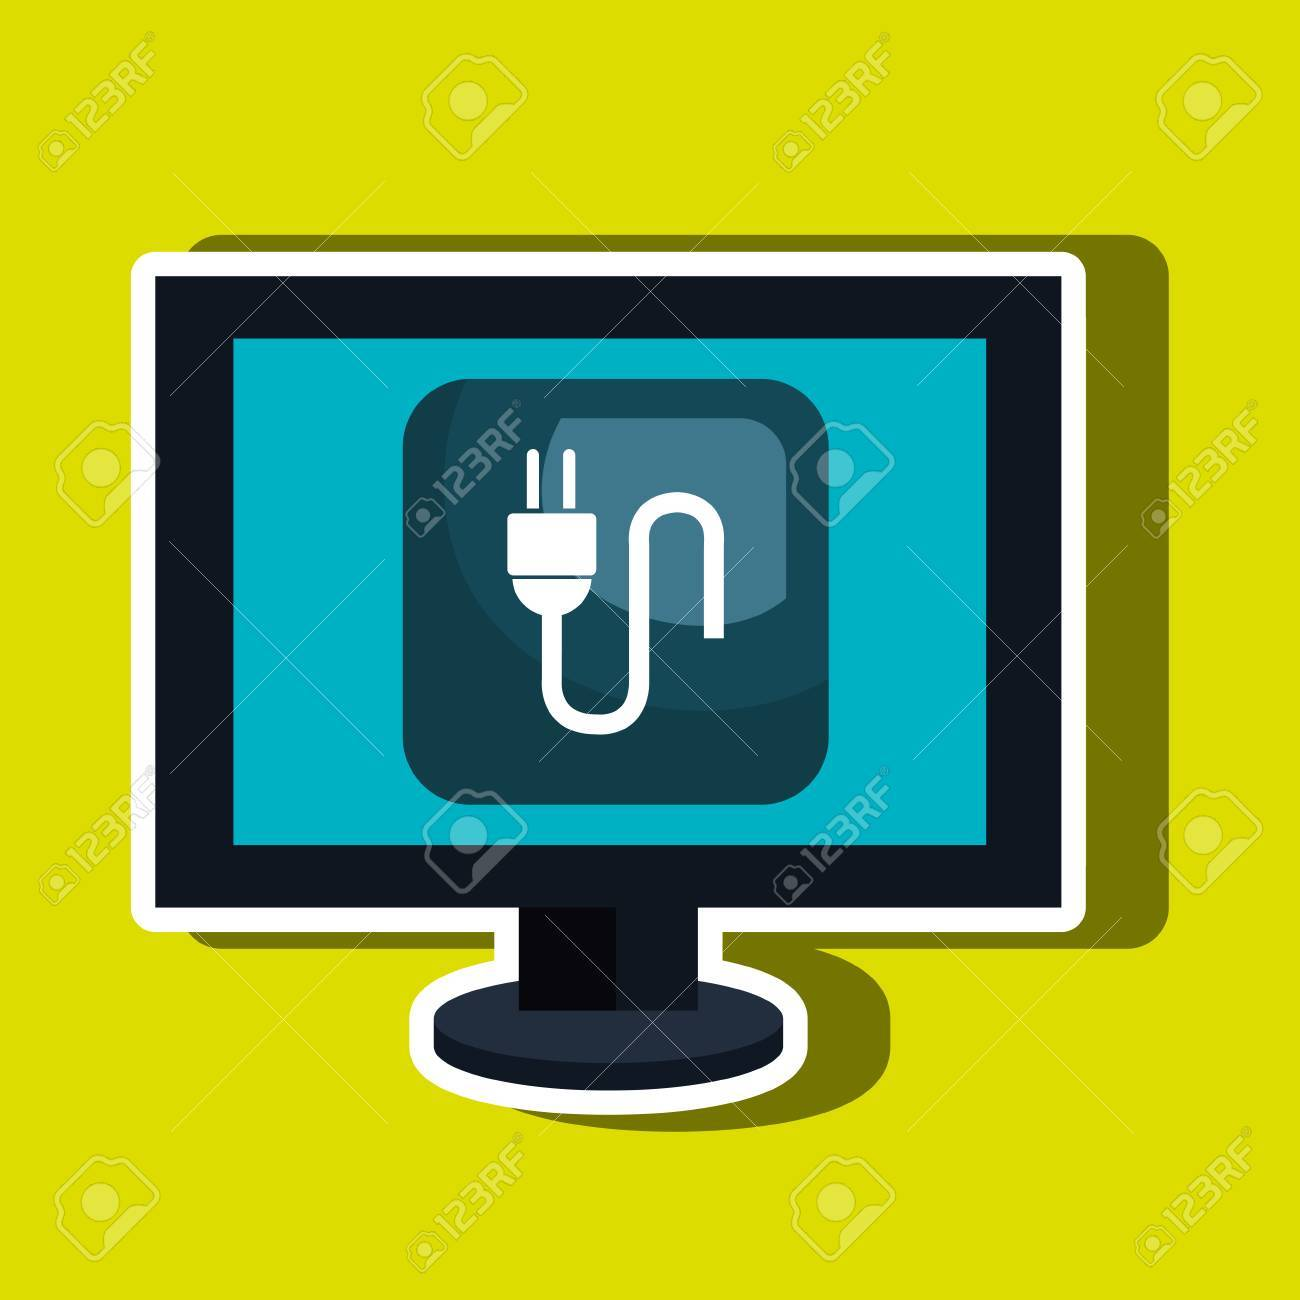 Computer Desktop With Energy Plug Isolated Icon Design Vector